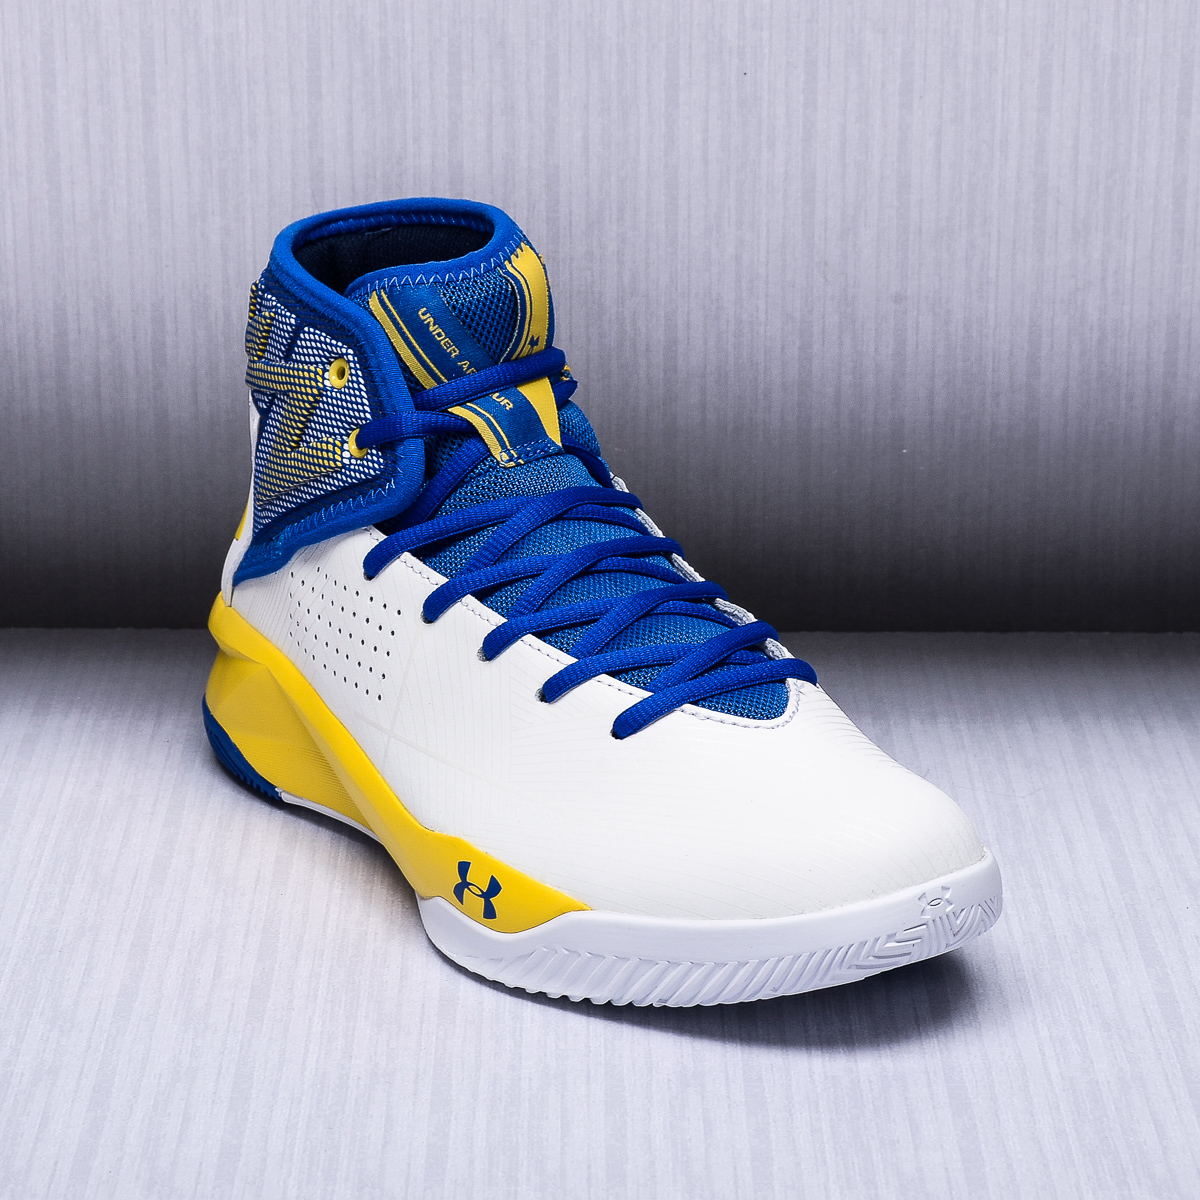 armour rocket 2 basketball shoes basketball shoes